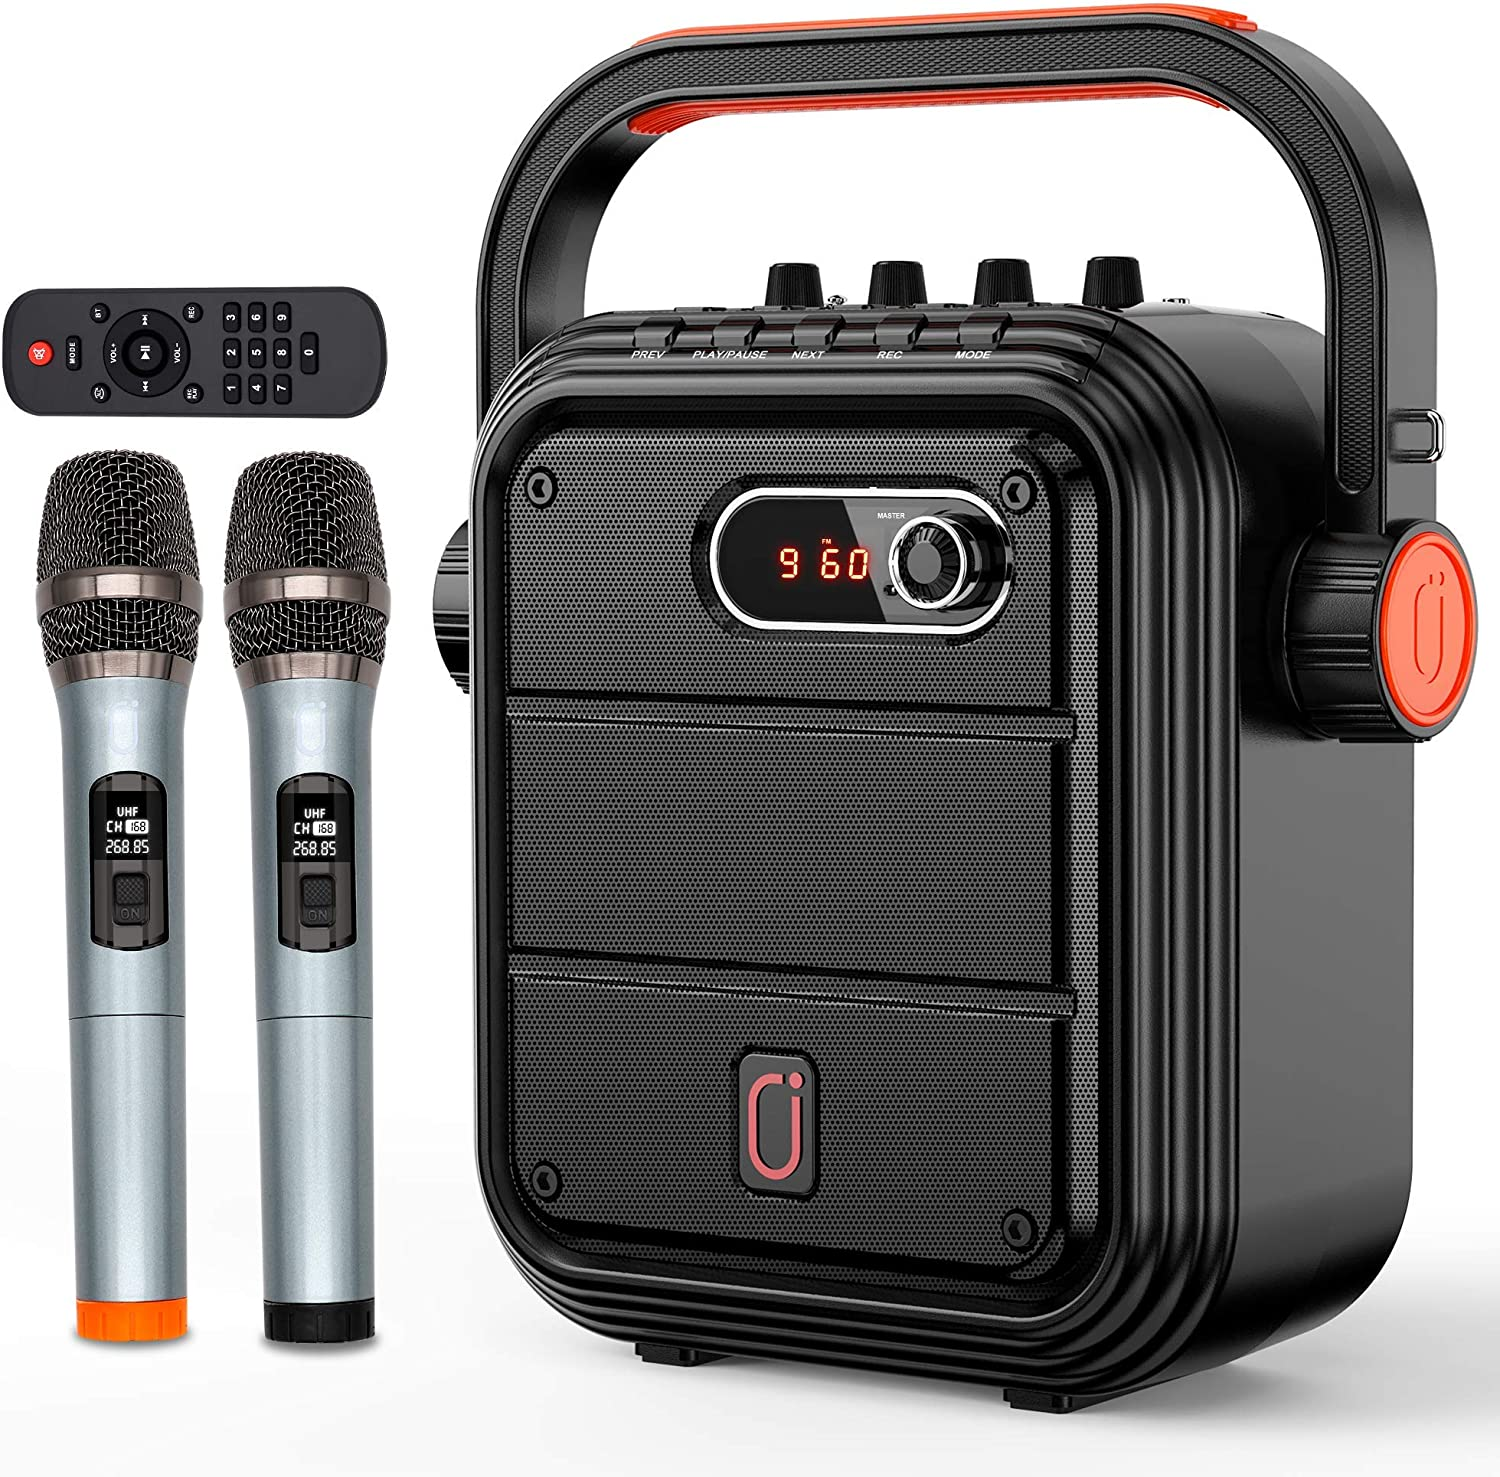 JYX High quality new Karaoke Machine with Max 65% OFF Two Microphones Wireless Blue Portable